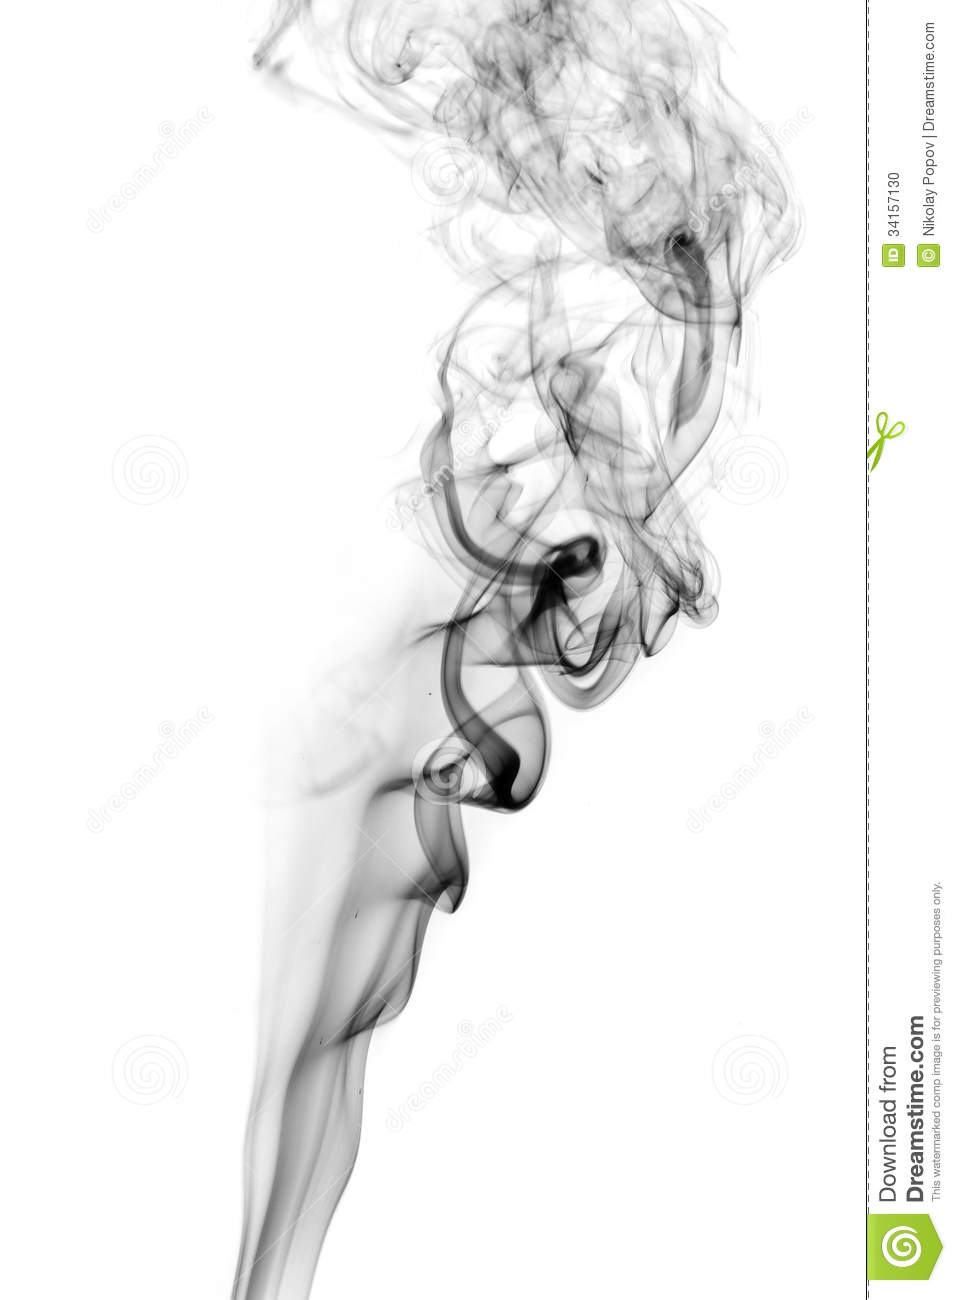 Soot. Black Smoke. Stock Photo - Image: 34157130